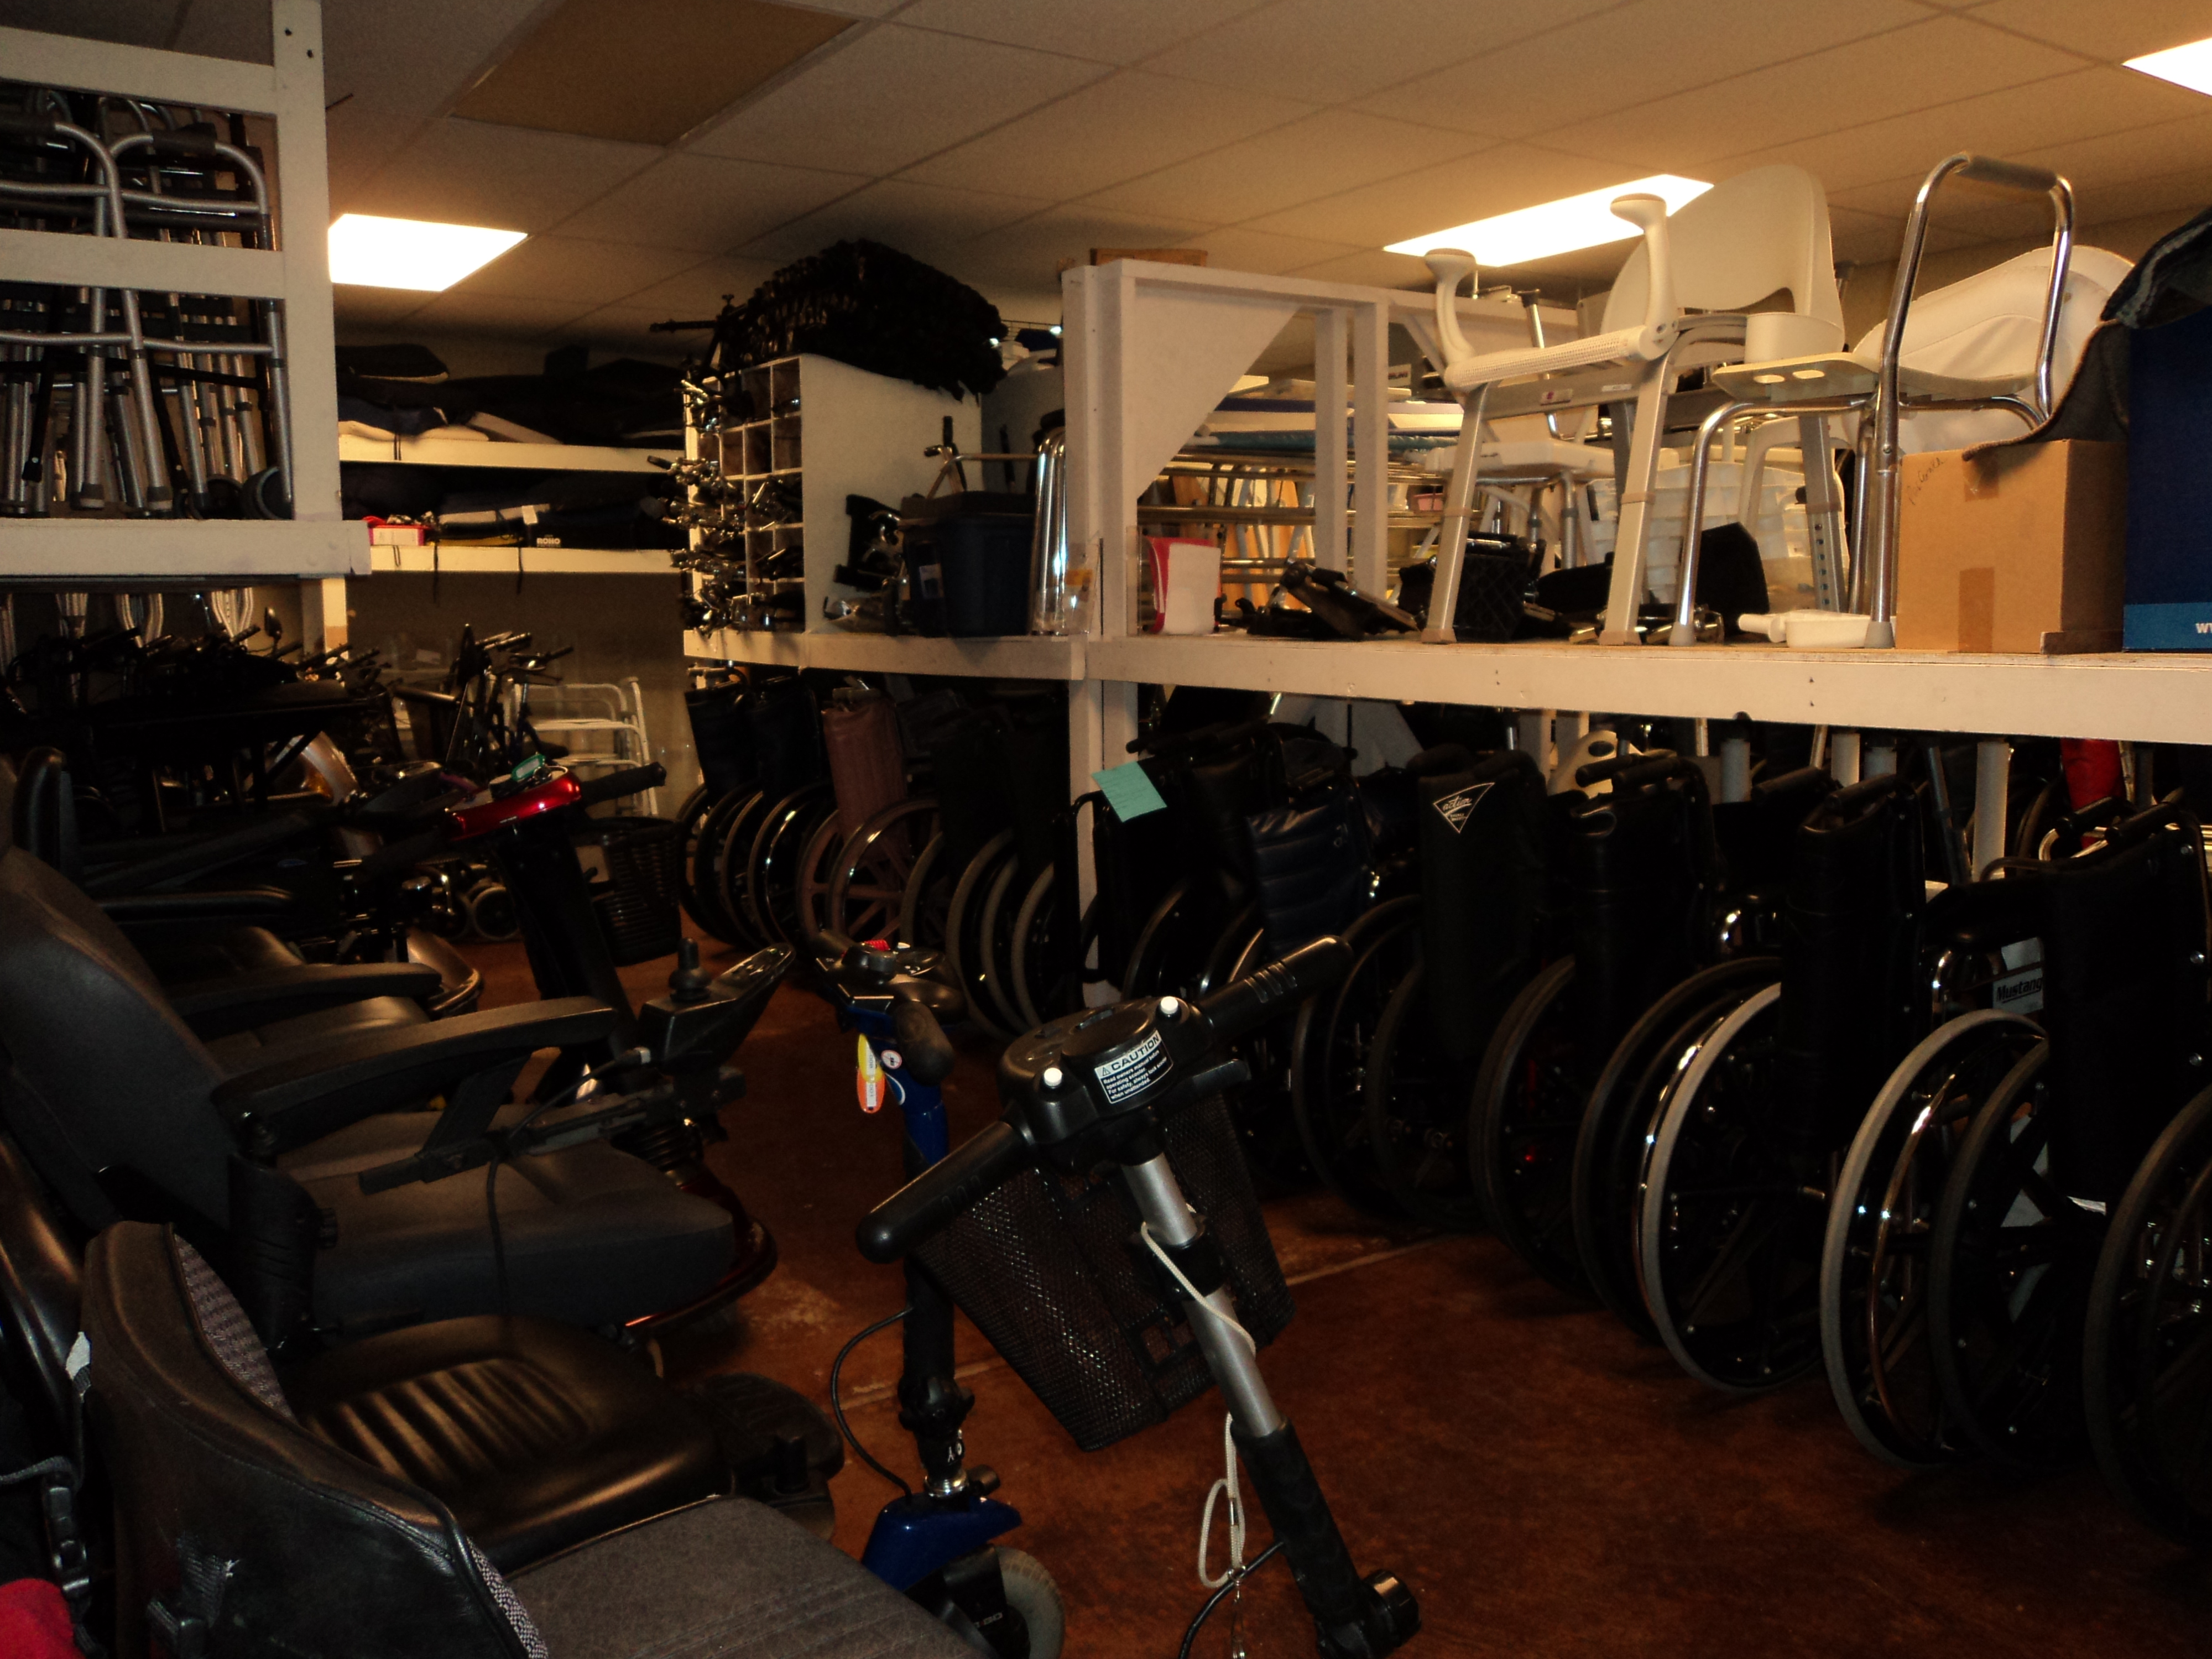 Photo of the Loan closet showing wheelchairs, comodes, scooters, walkers and more that are available for public to rent or buy